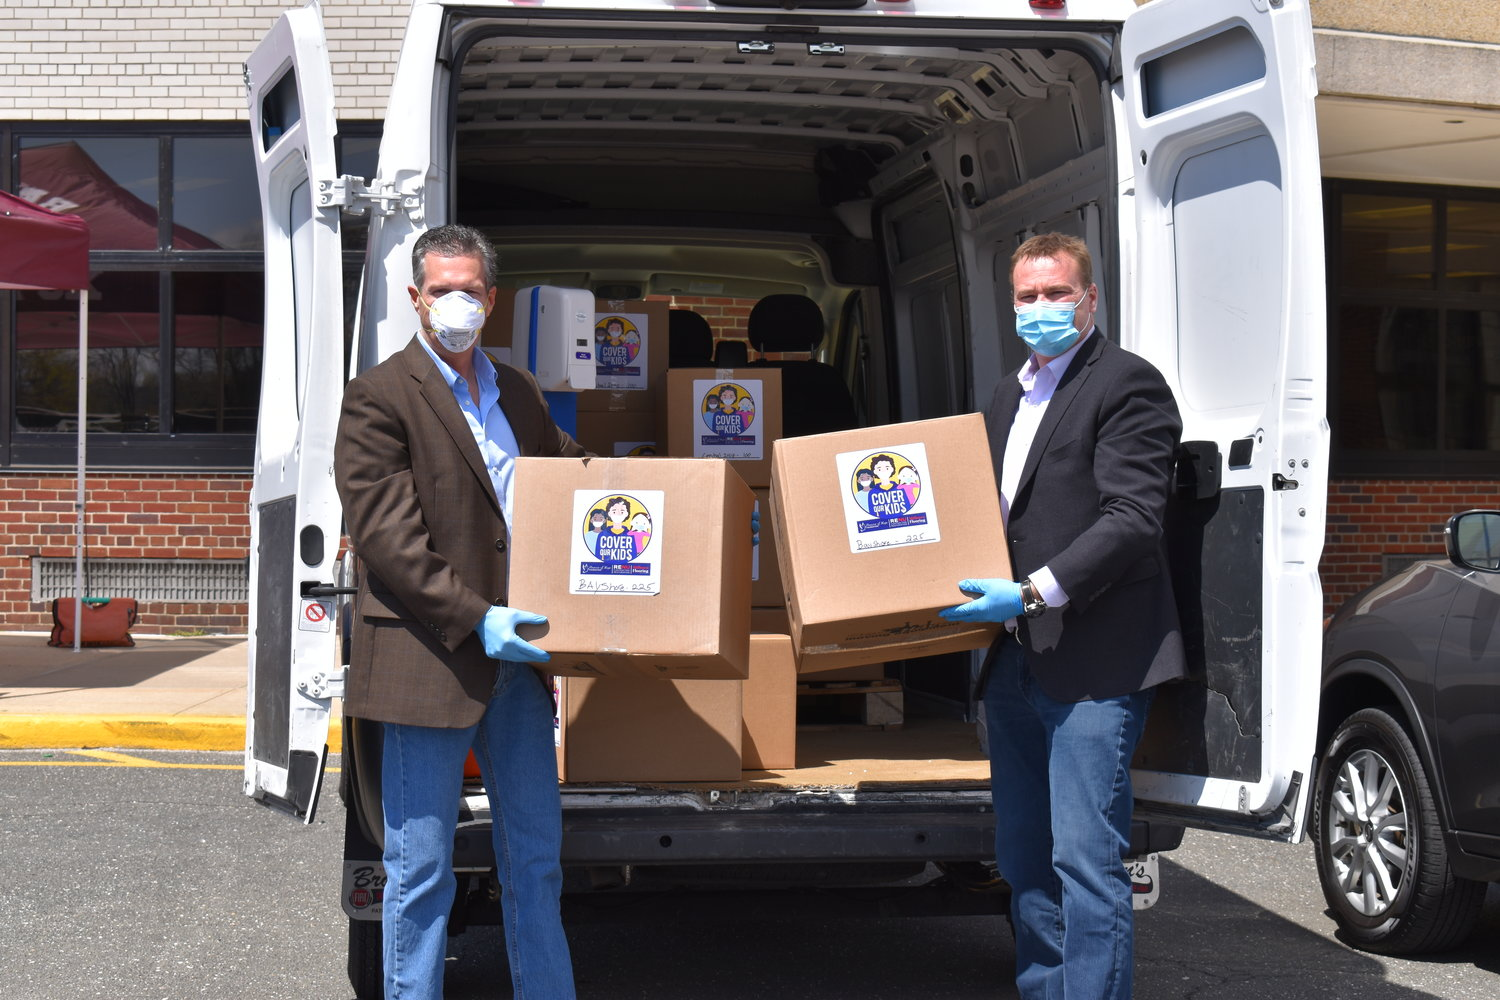 Bay Shore Schools superintendent Joseph Bond and Michael VanDenburg, principal of RENU Contracting Restoration and Milburn Flooring, unload the mass donation of non-surgical masks for students to pick up in addition to grab-and-go meals during the COVID-19 pandemic.